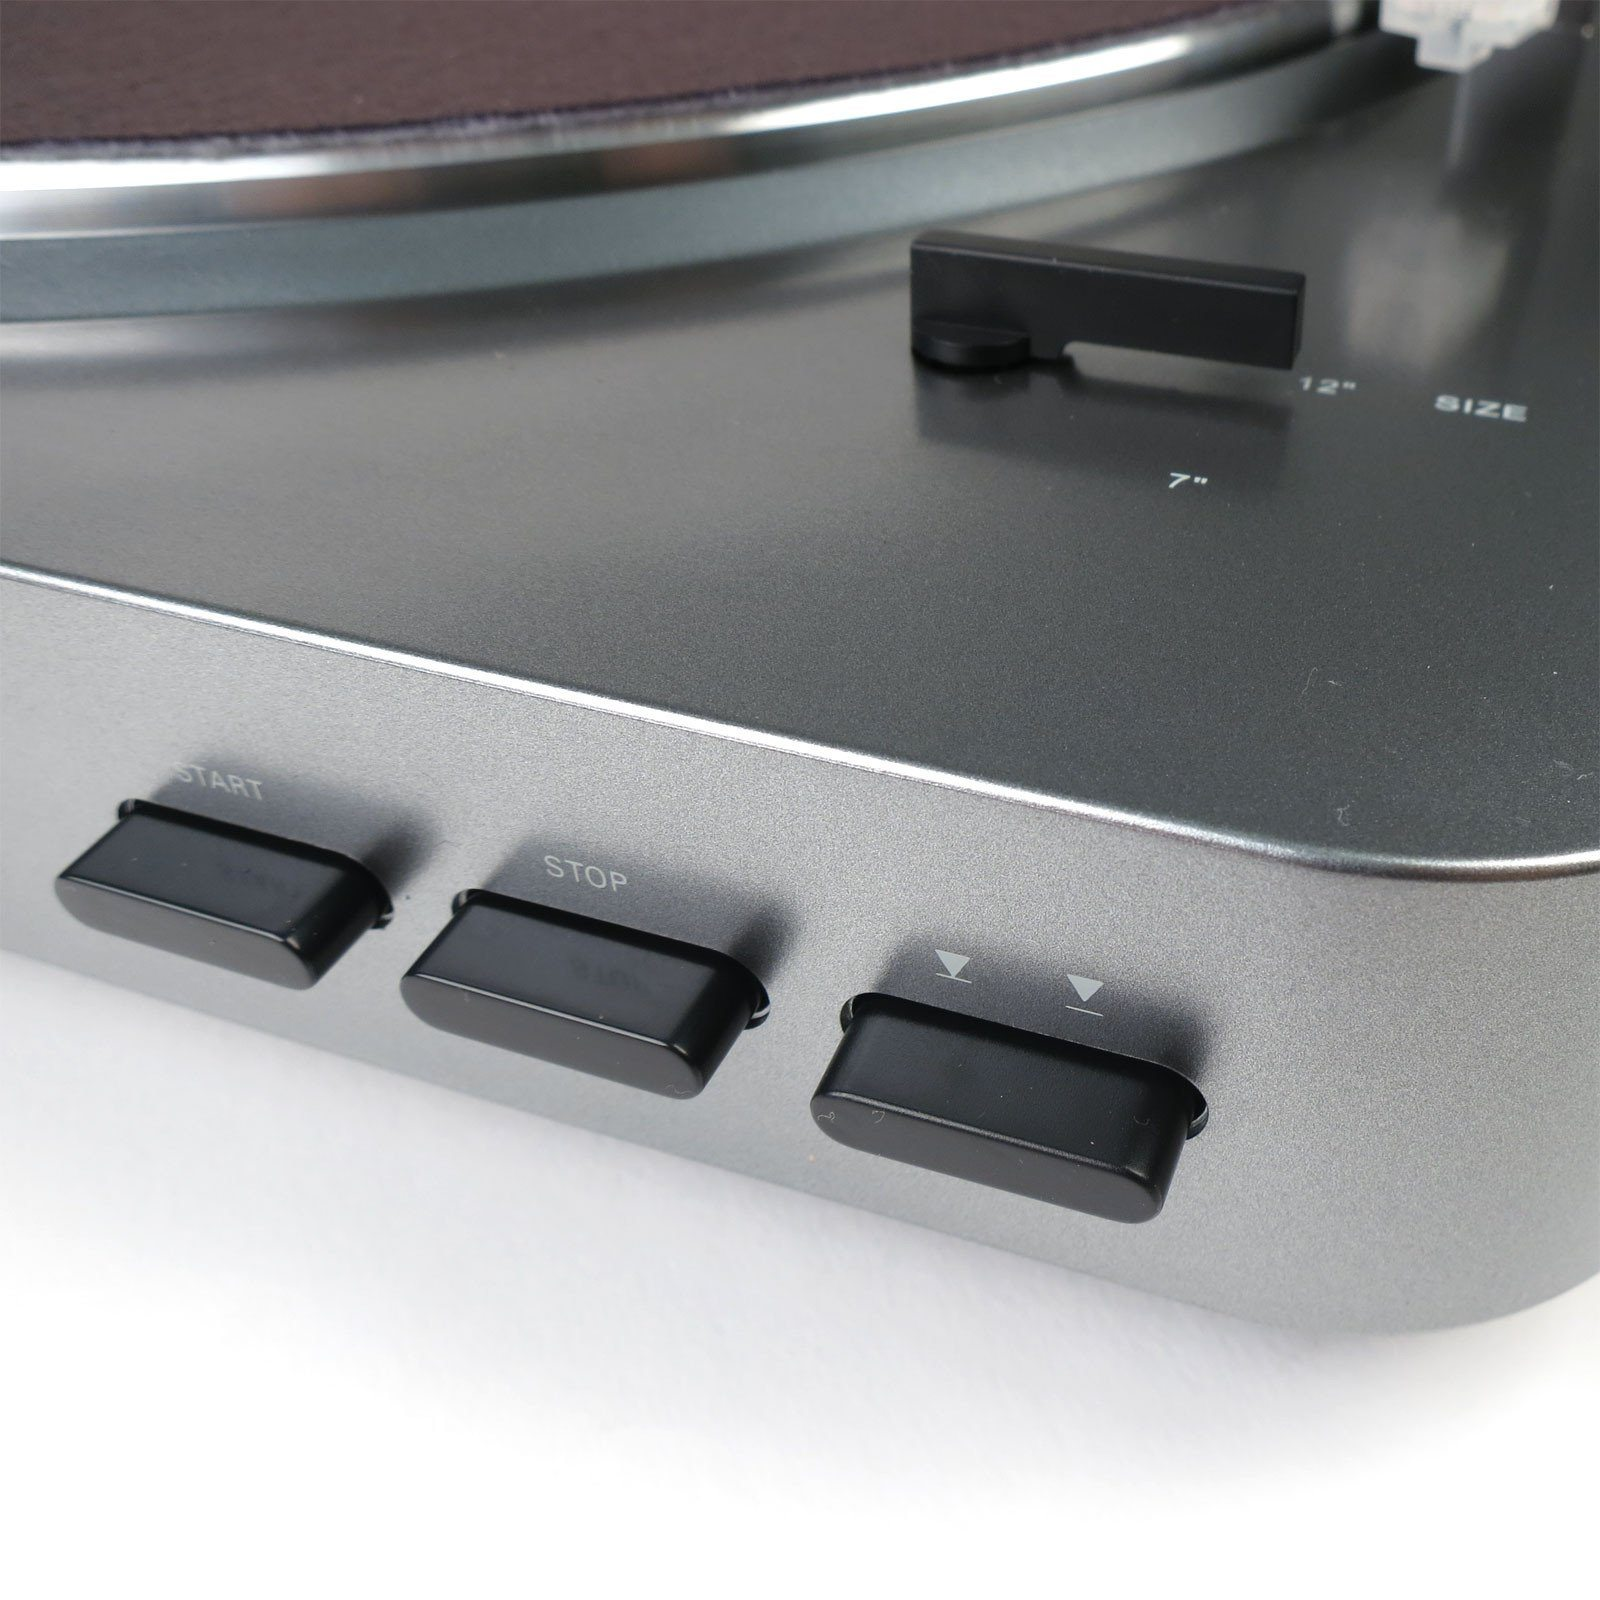 Audio Technica At Lp60 Usb Stereo Turntable Analog Fully Automatic Belt Drive